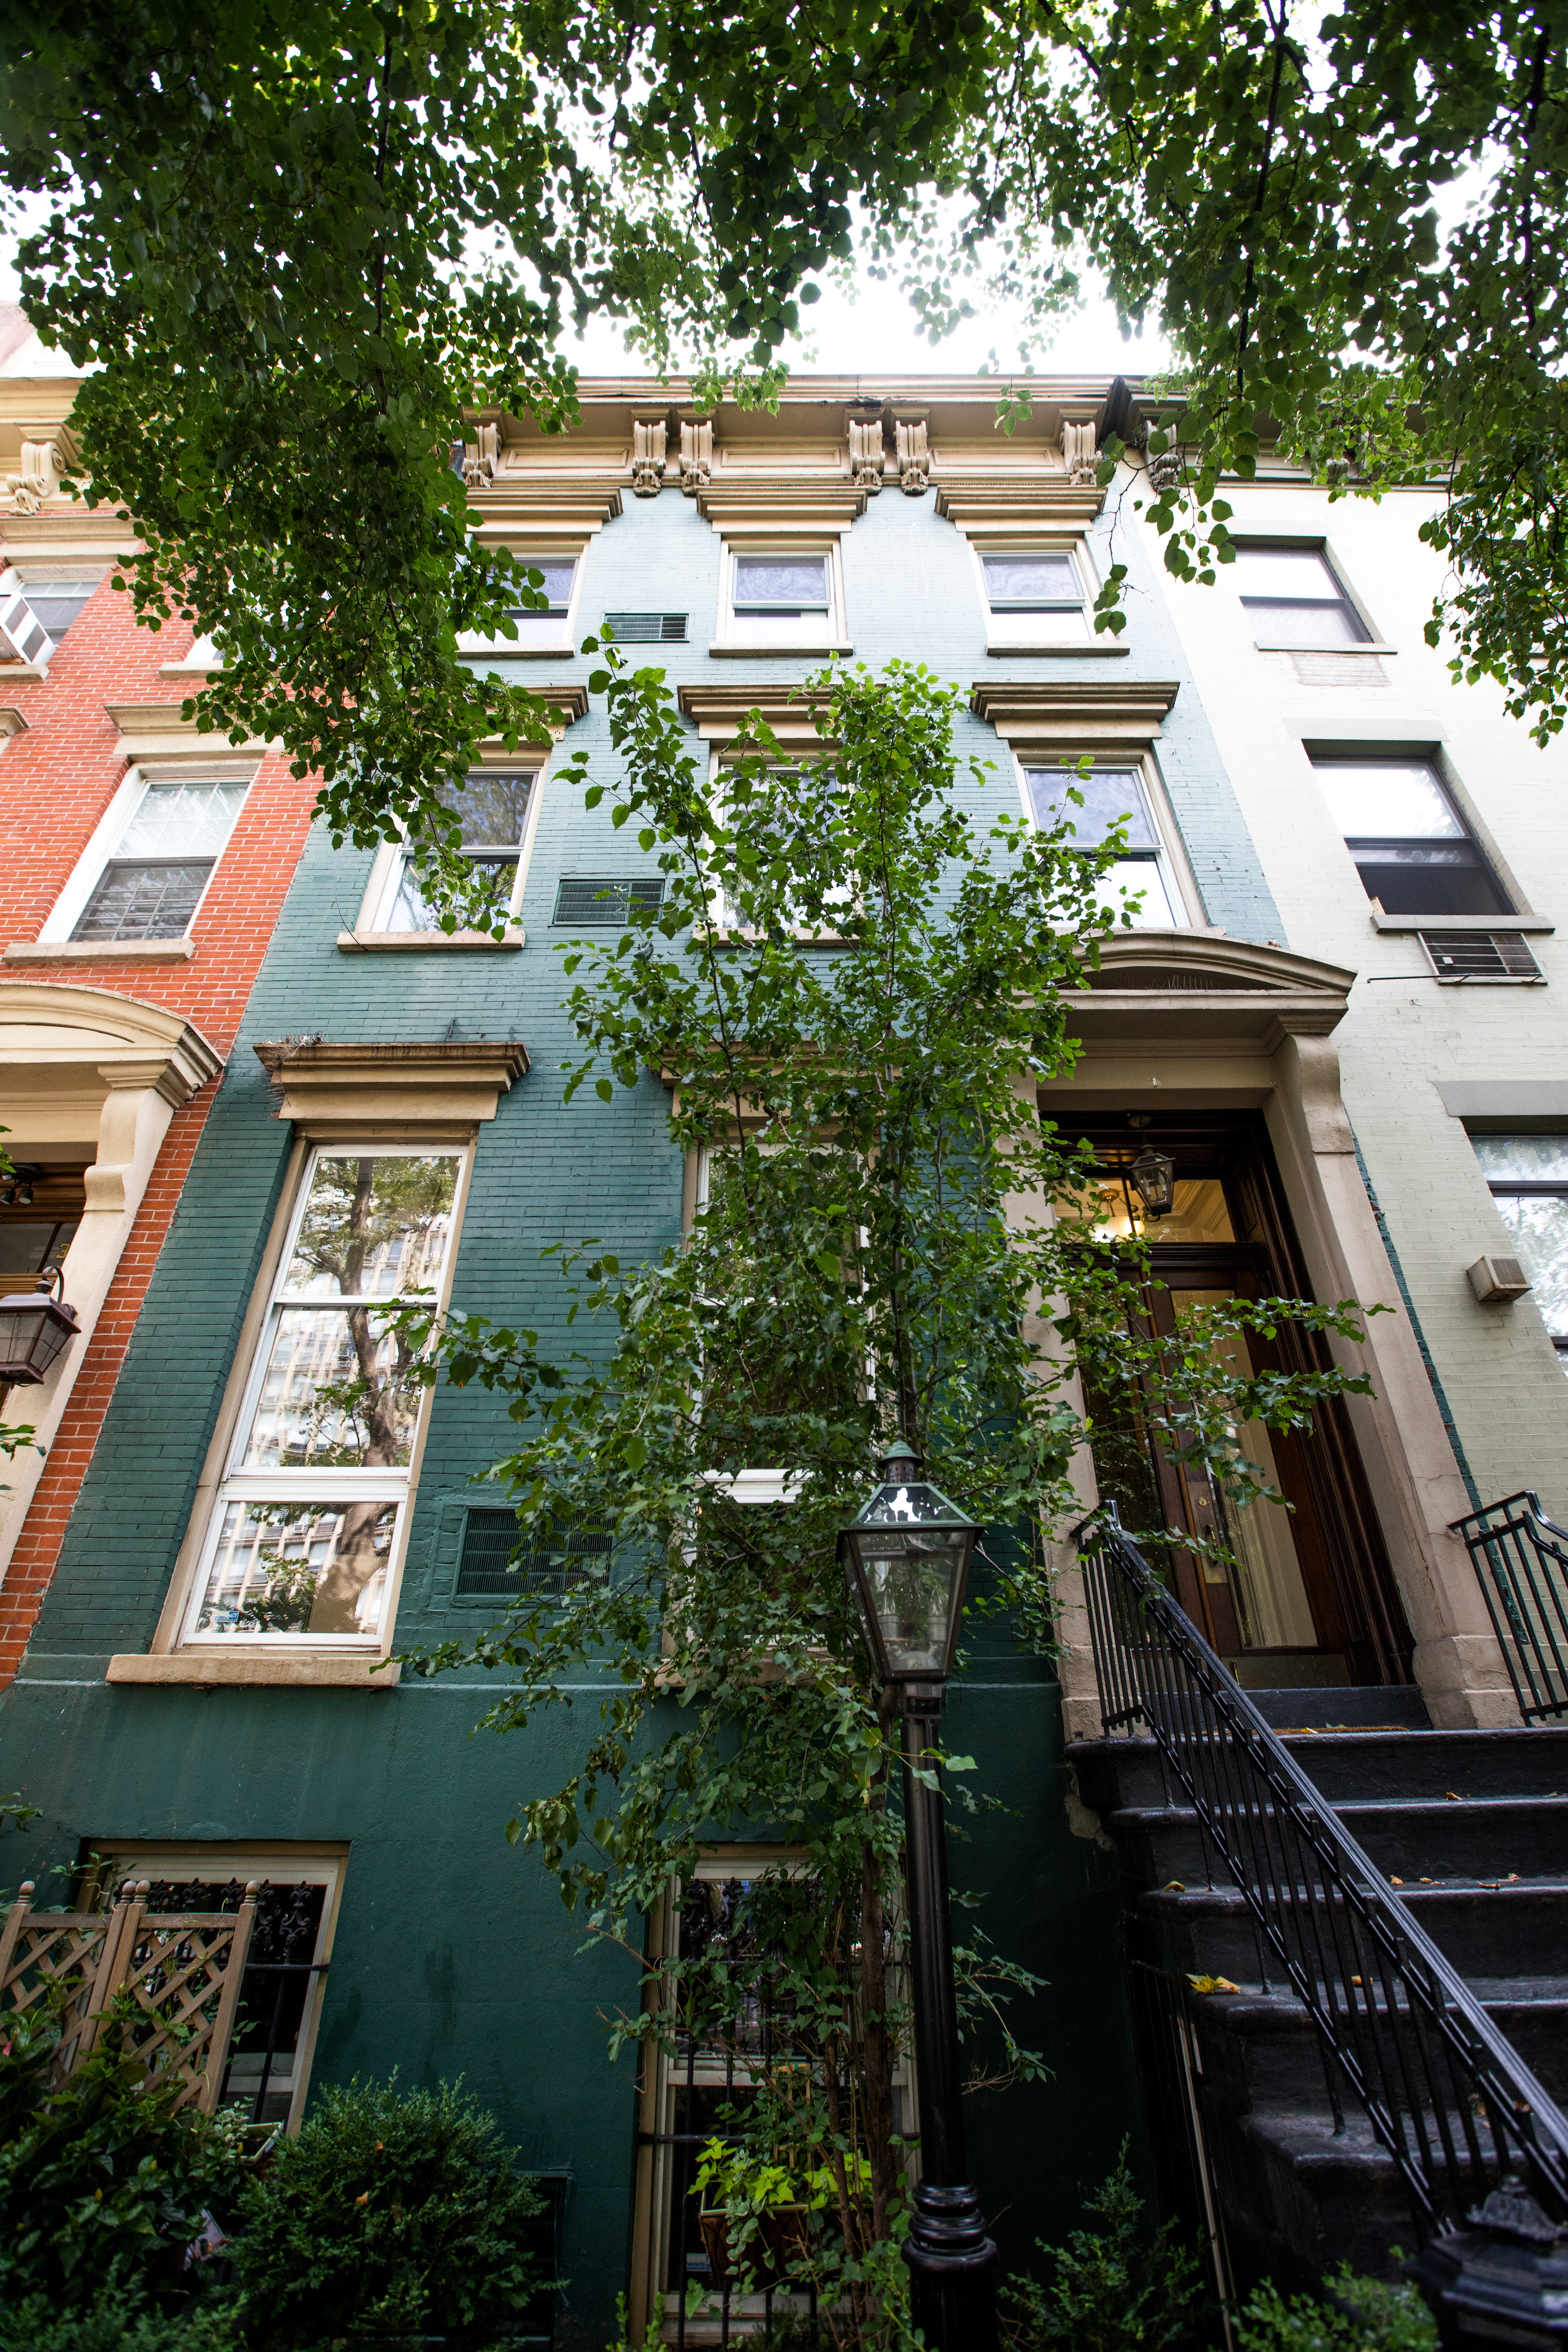 Drayden's Home, 328 East 30th St., New York City, The Initiation